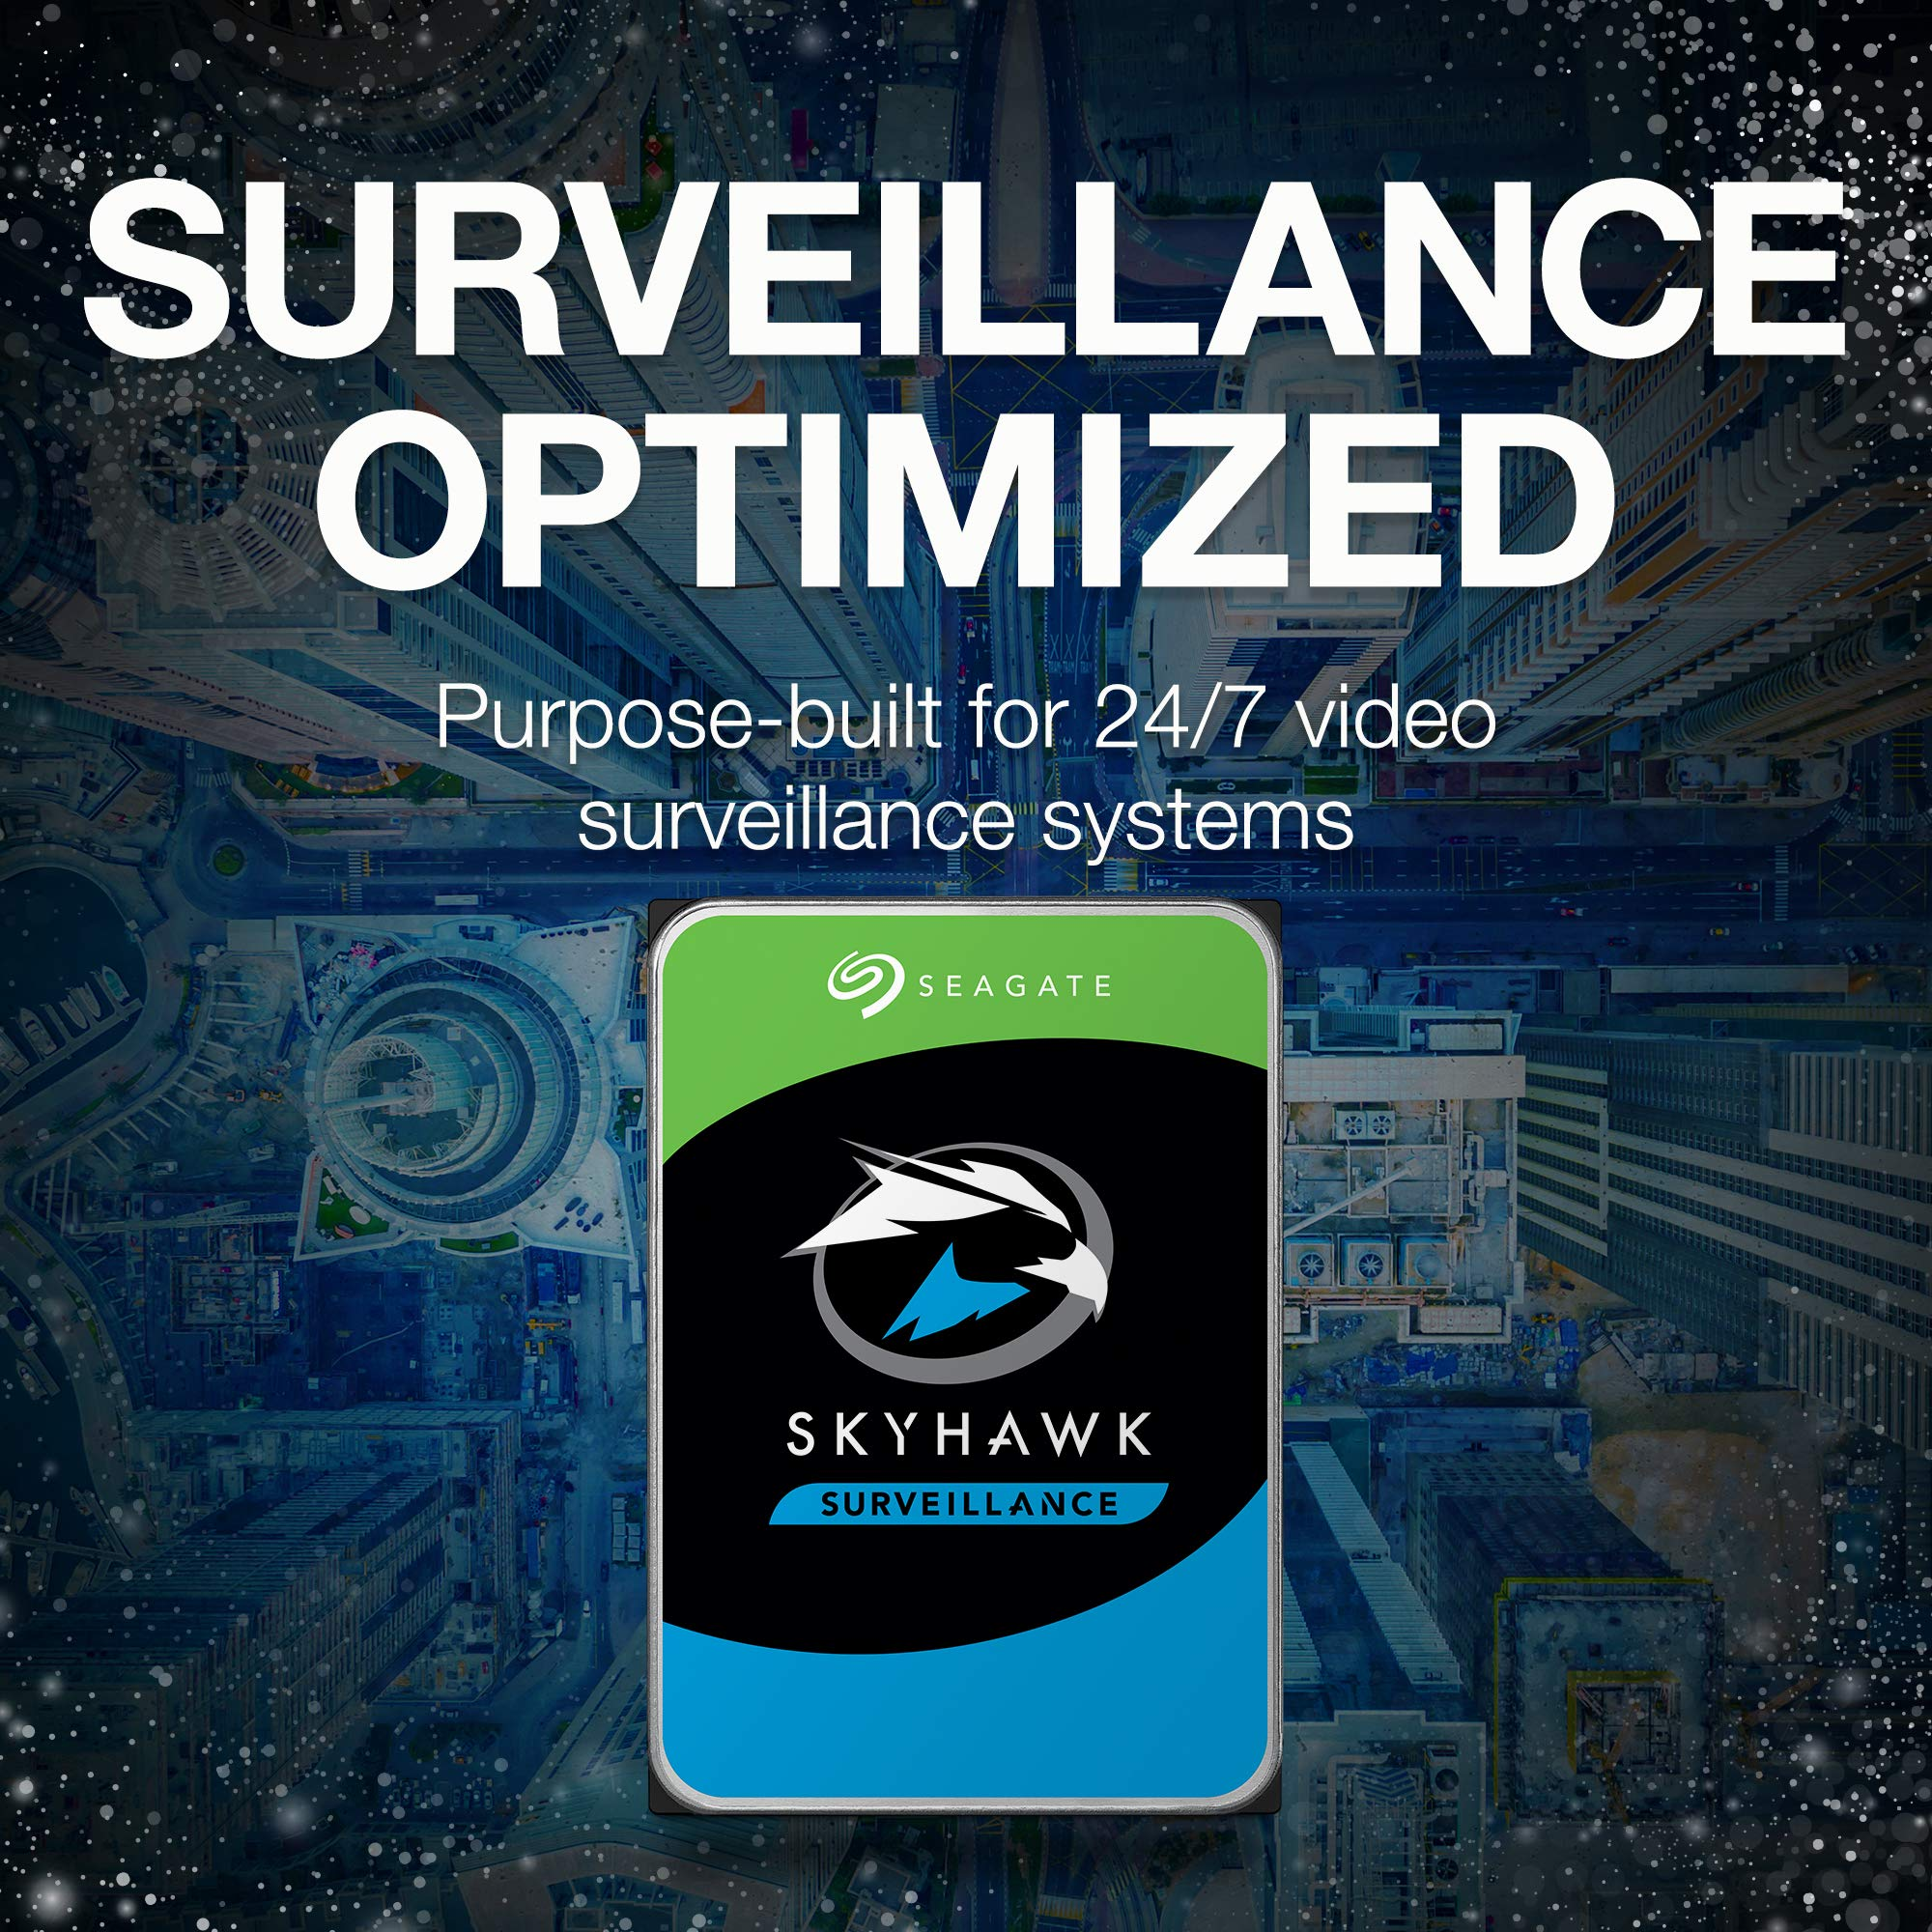 Seagate Skyhawk 6TB Surveillance Internal Hard Drive HDD - 3.5 Inch SATA 6GB/s 256MB Cache for DVR NVR Security Camera System with Drive Health Management - Frustration Free Packaging (ST6000VX001) by Seagate (Image #3)